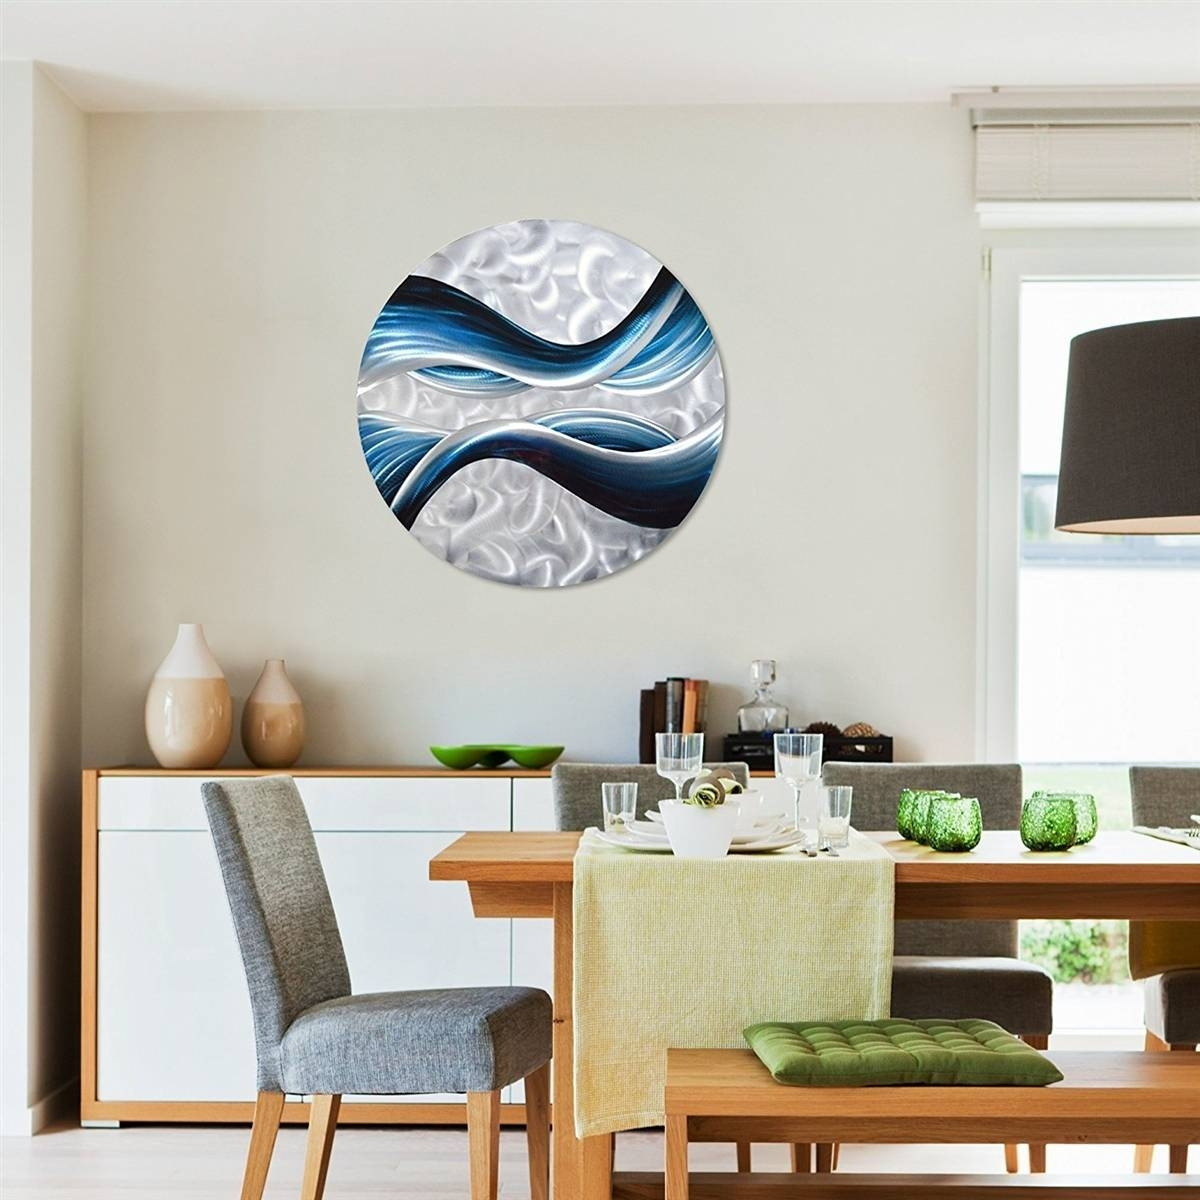 Pure Art Blue Desire Metal Wall Art, Small Round Metal Wall Decor Intended For Current Contemporary 3D Wall Art (View 17 of 20)